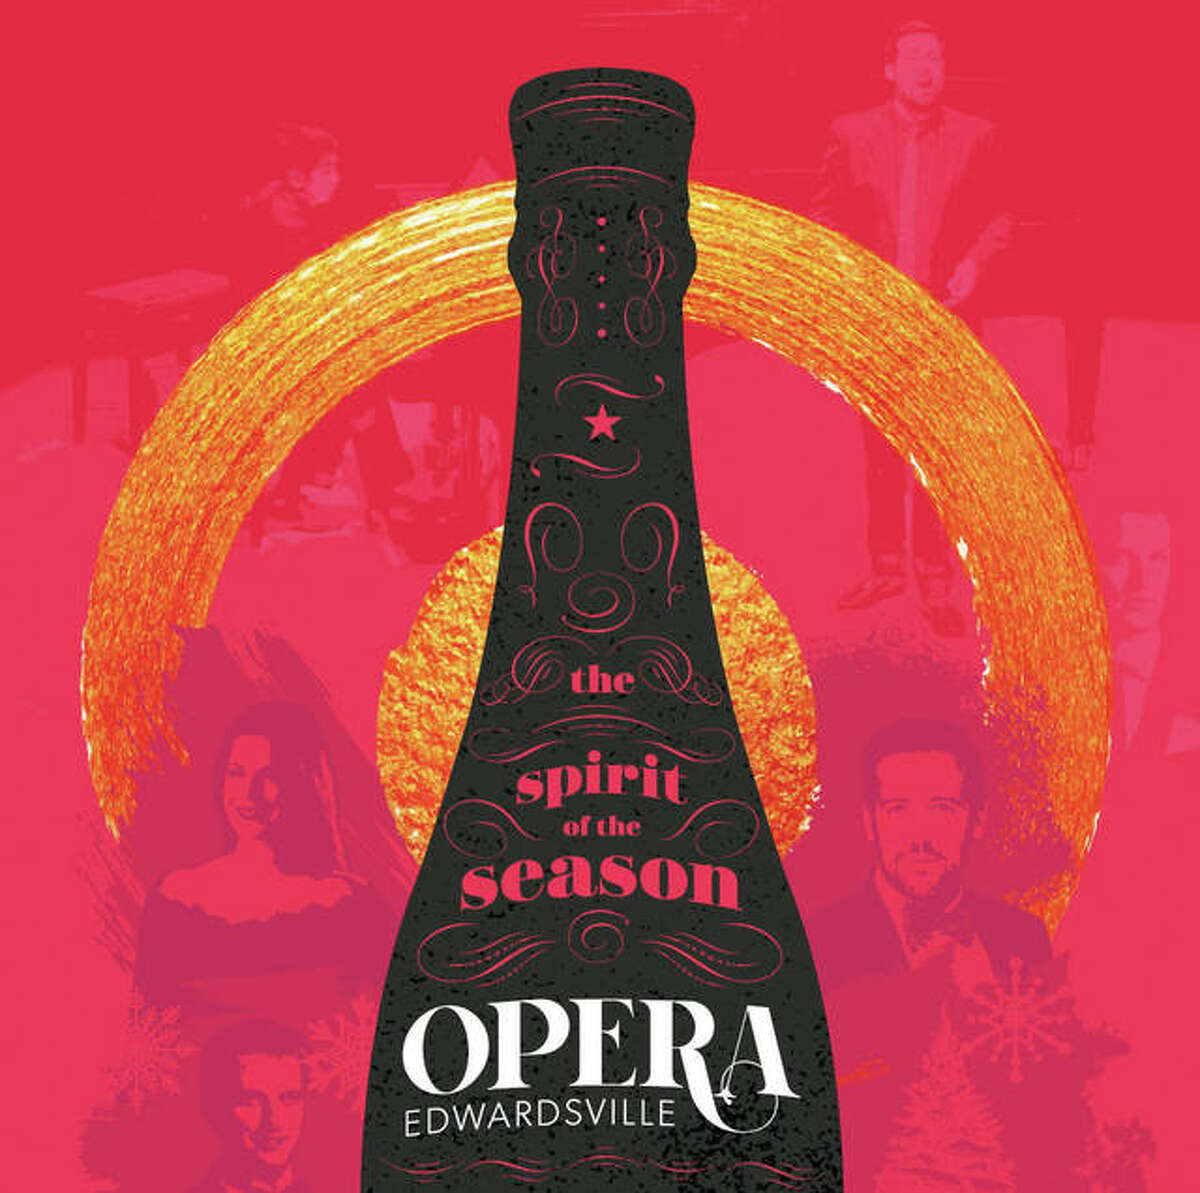 """What better way to christen Opera Edwardsville's maiden voyage than popping open the Champagne? Opera Edwardsville's 2018 commemorative launch poster - designed by Edwardsville design firm Jim Harper Creative - features a striking design of a champagne bottle as a focal piece. Posters are a celebrated fixture of the operatic tradition - with many iconic designs throughout history from top opera houses. This design was particularly fitting at Opera Edwardsville's 2018 December Launch Party & Champagne Reception, where its soloists surprised attendees with a performance of the famous """"Champagne Trio"""" from Strauss' Die Fledermaus, for which the main chorus of """"a toast"""" received cheers and raised glasses from guests. Without making any promises, Opera Edwardsville founder and Artistic Director Chase Hopkins said this toast seems like a tradition in the making."""